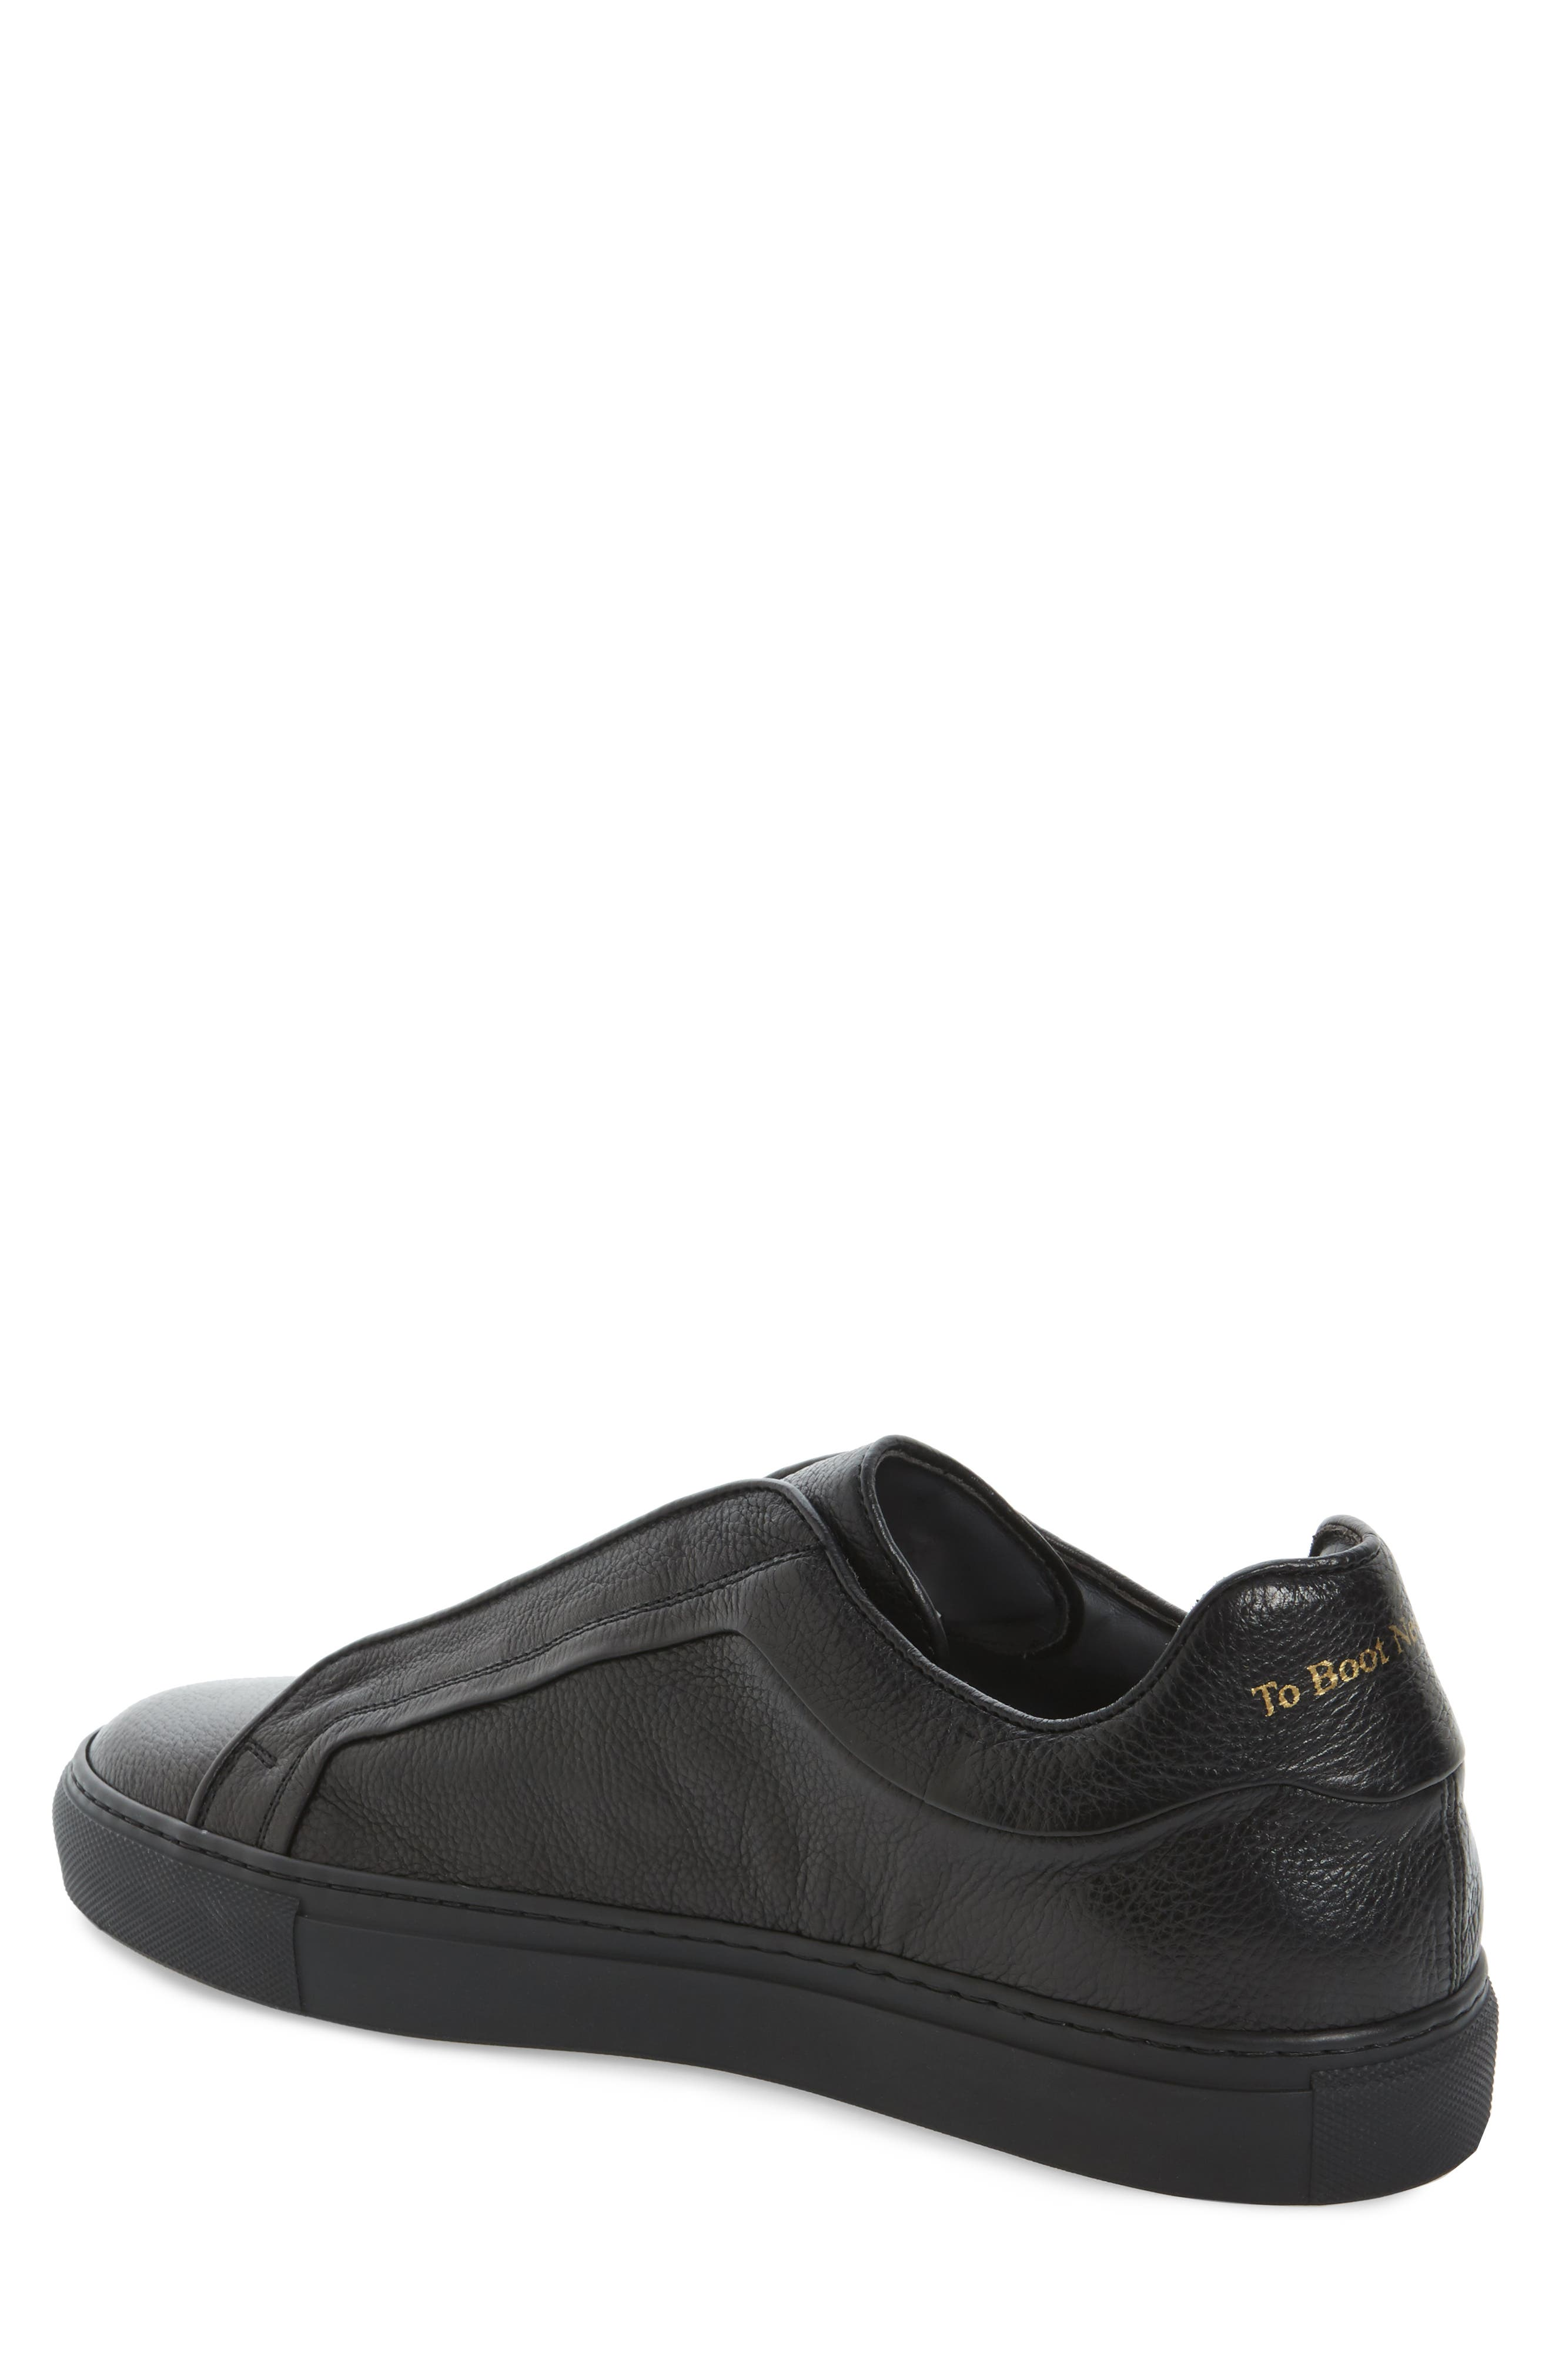 Cliff Sneaker,                             Alternate thumbnail 2, color,                             Black Leather